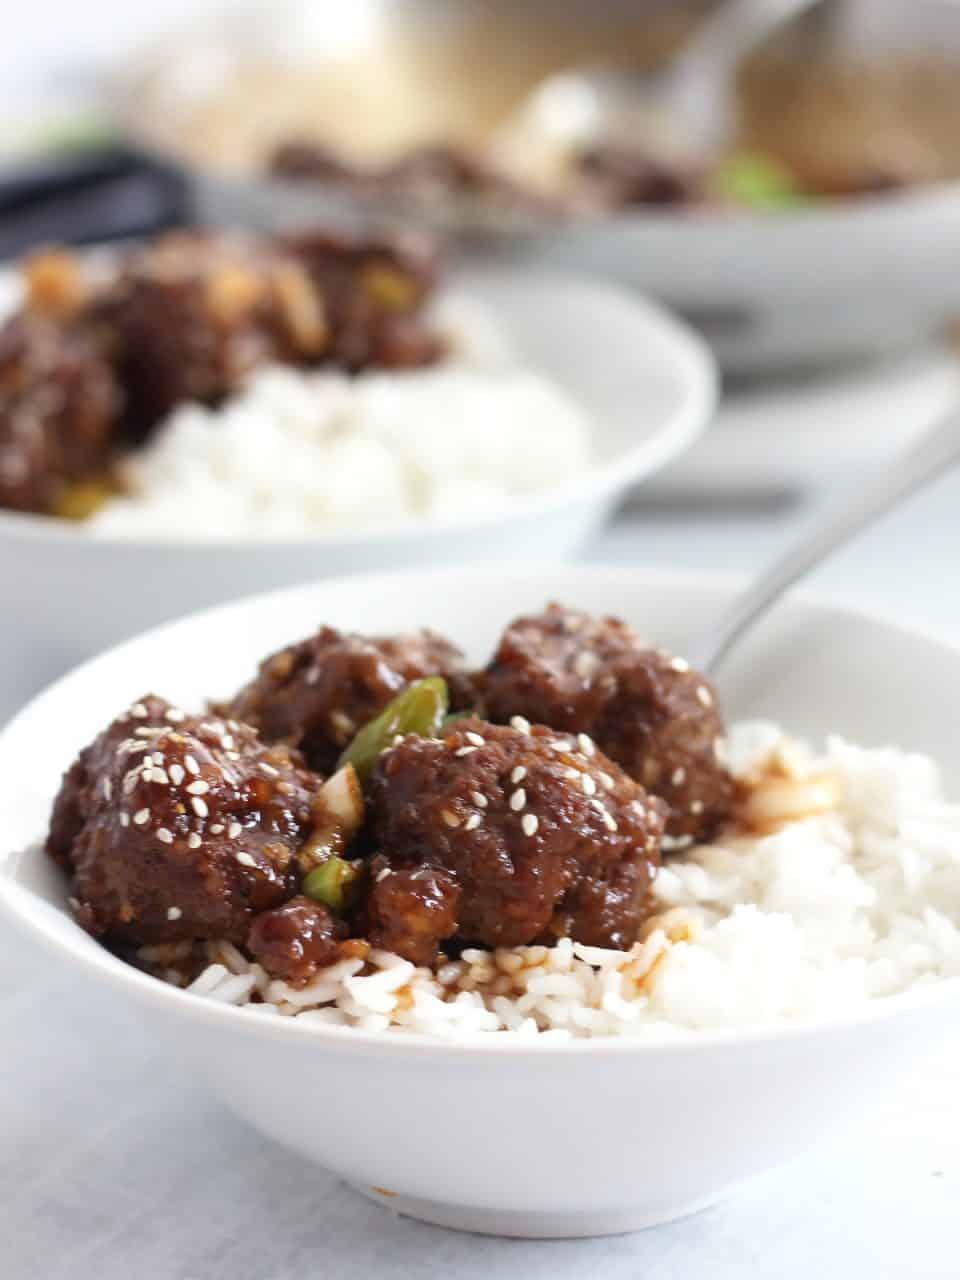 Four meatballs served in a bowl on a bed of rice.